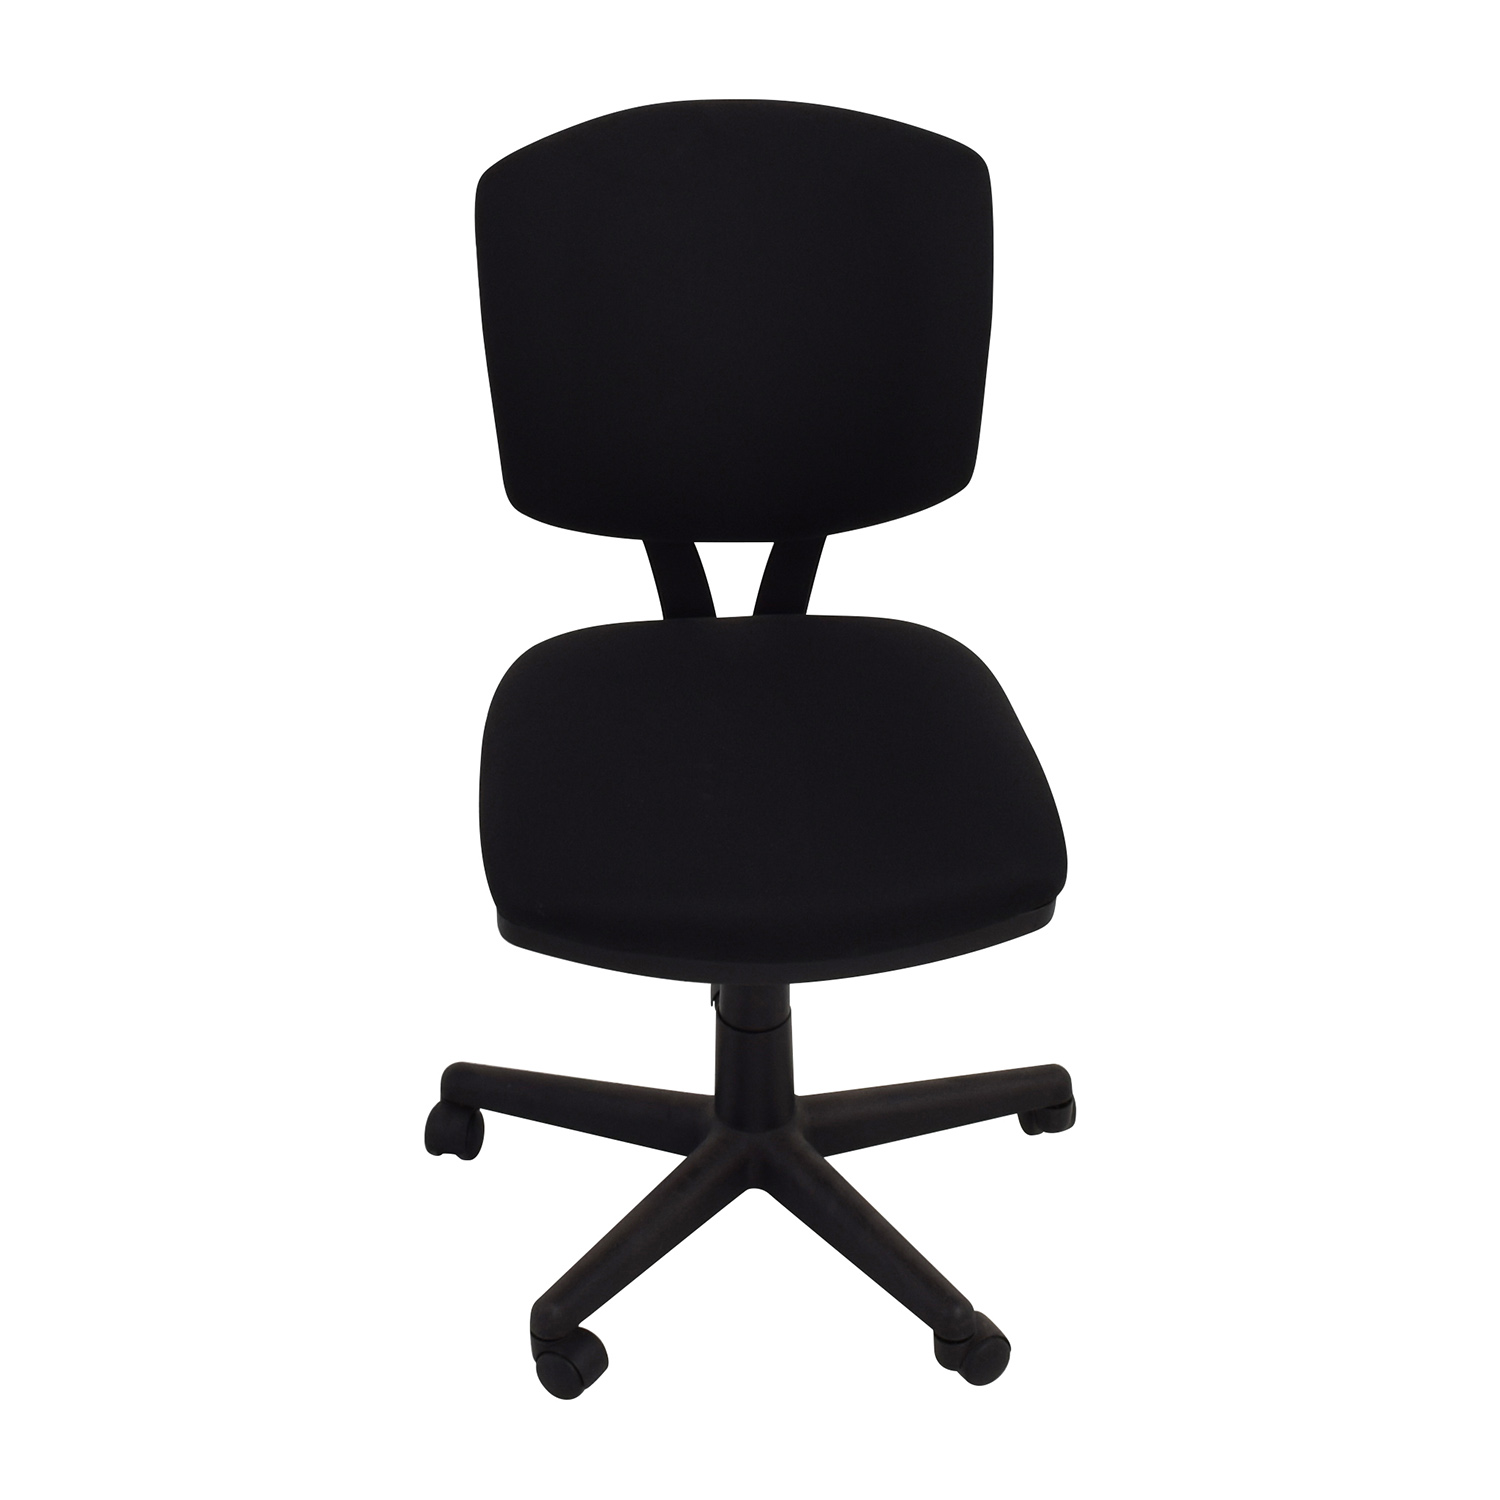 buy Black Adjustable Office Chair  Home Office Chairs